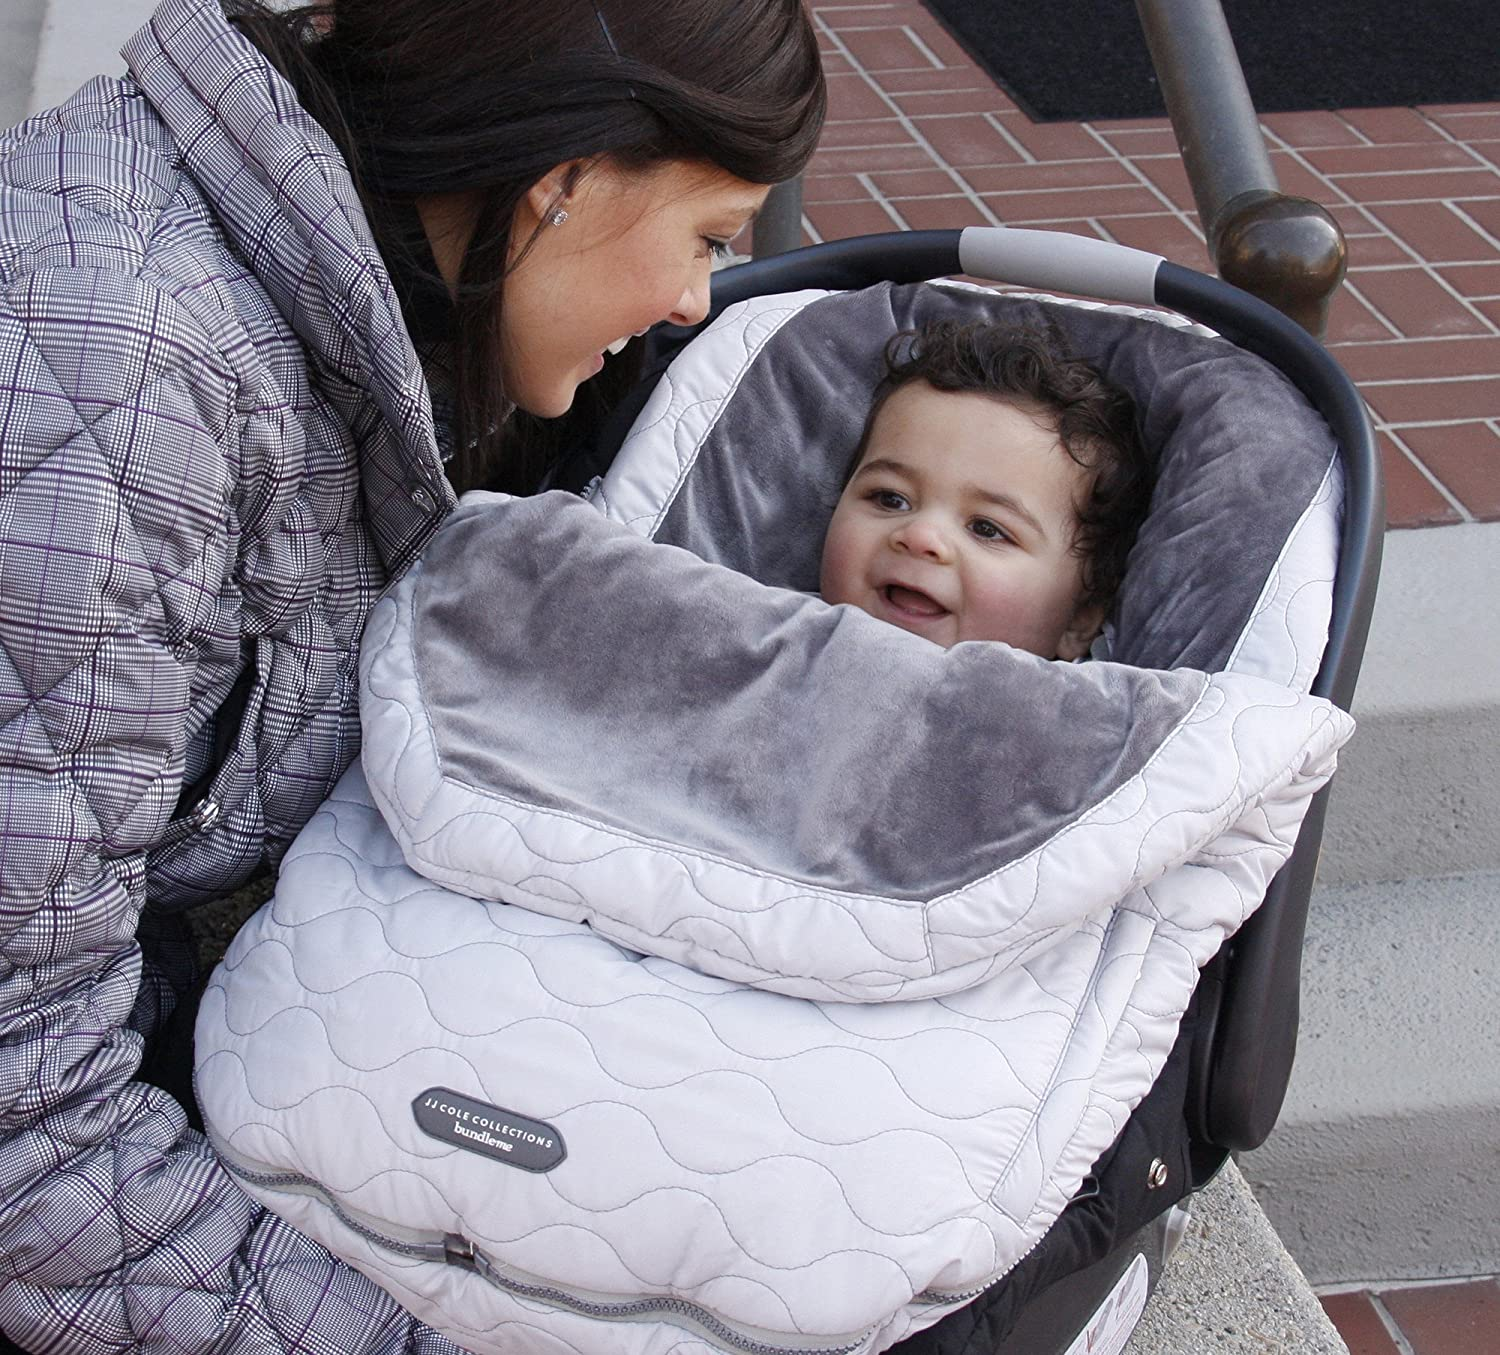 JJ Cole Canopy Style Bunting Bag to Protect Baby from Cold /& Winter Weather in Car Seats /& Strollers Urban Bundleme Infant Blush Pink